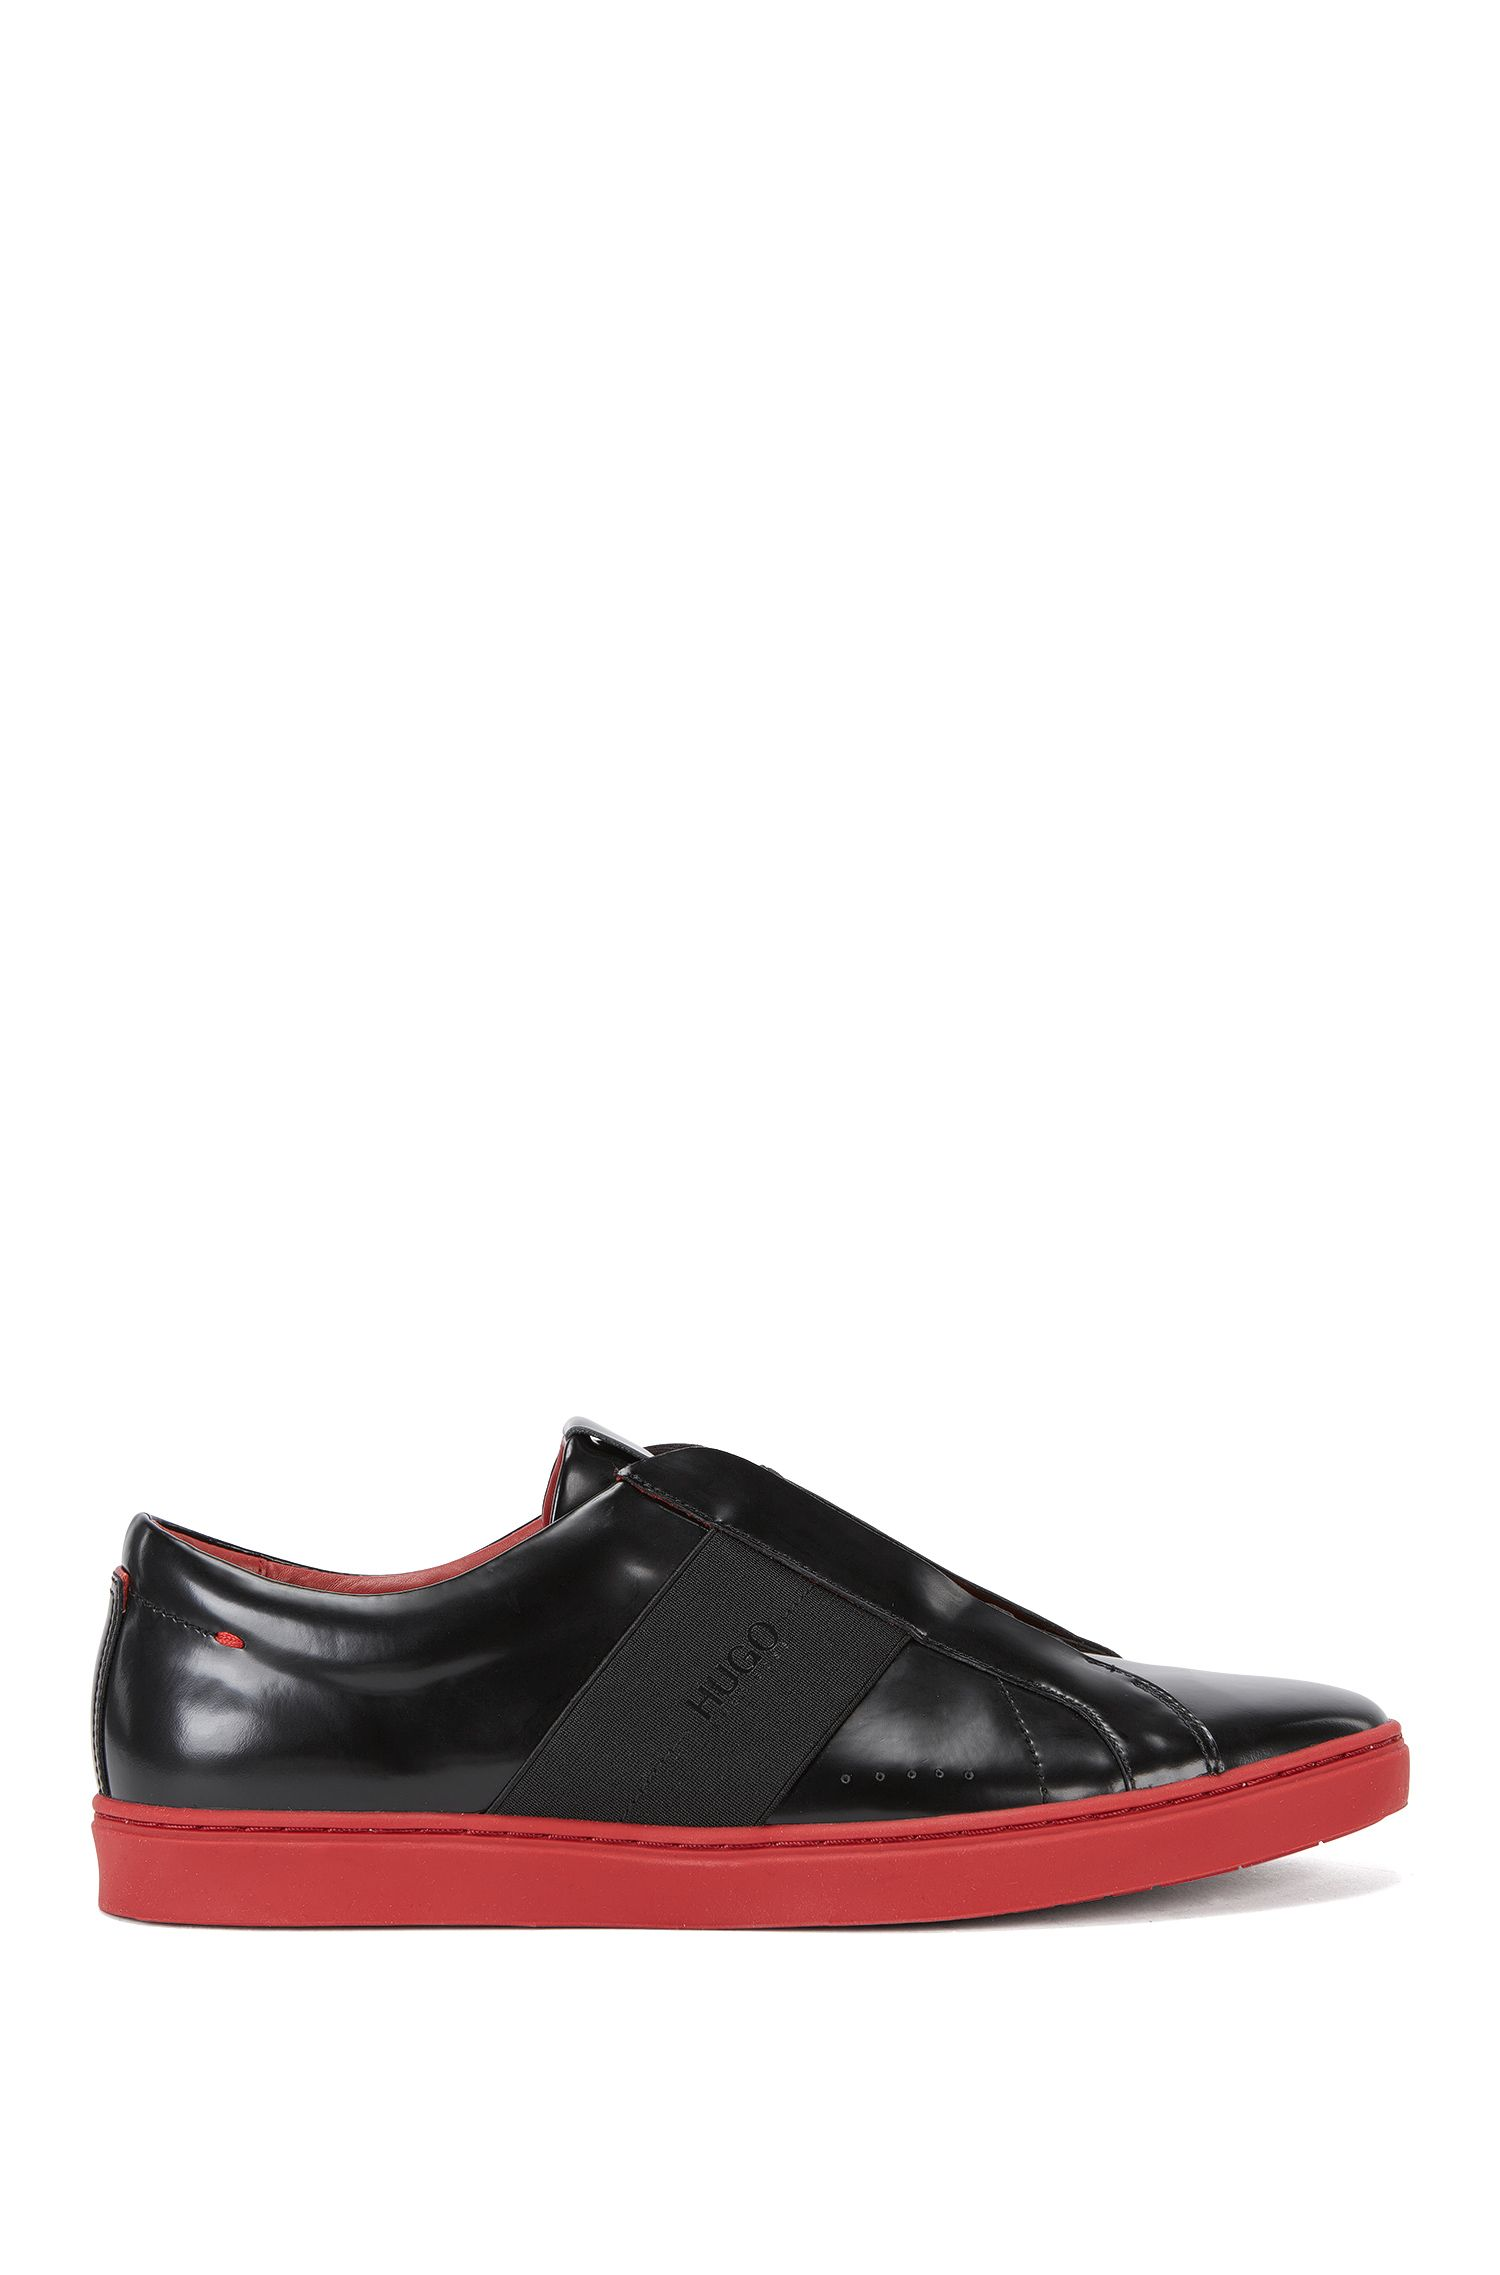 Slip-on leather trainers with elastic detail